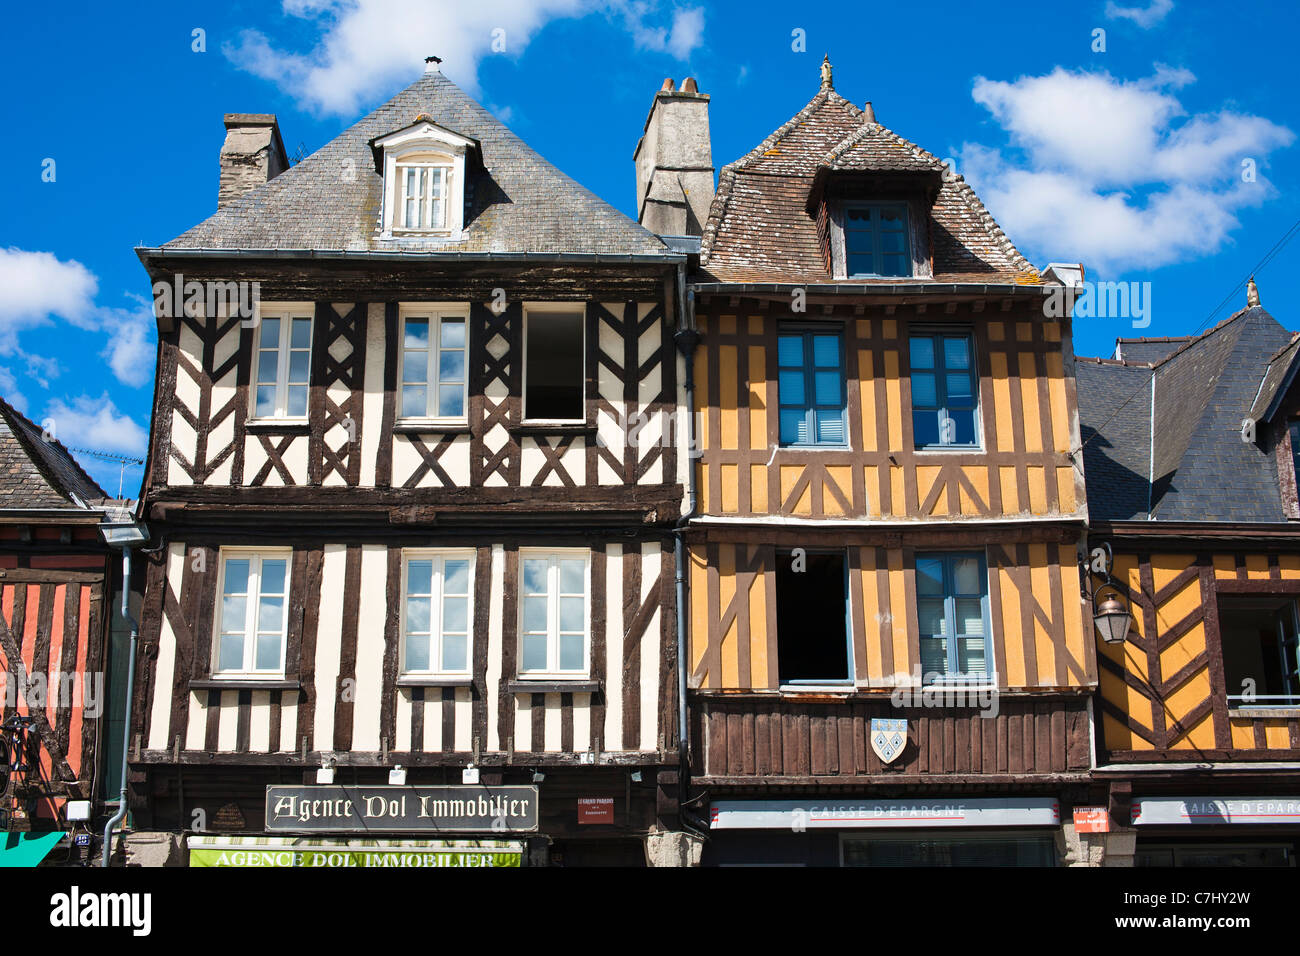 Architecture at dol de bretagne brittany france stock for Architecture fr